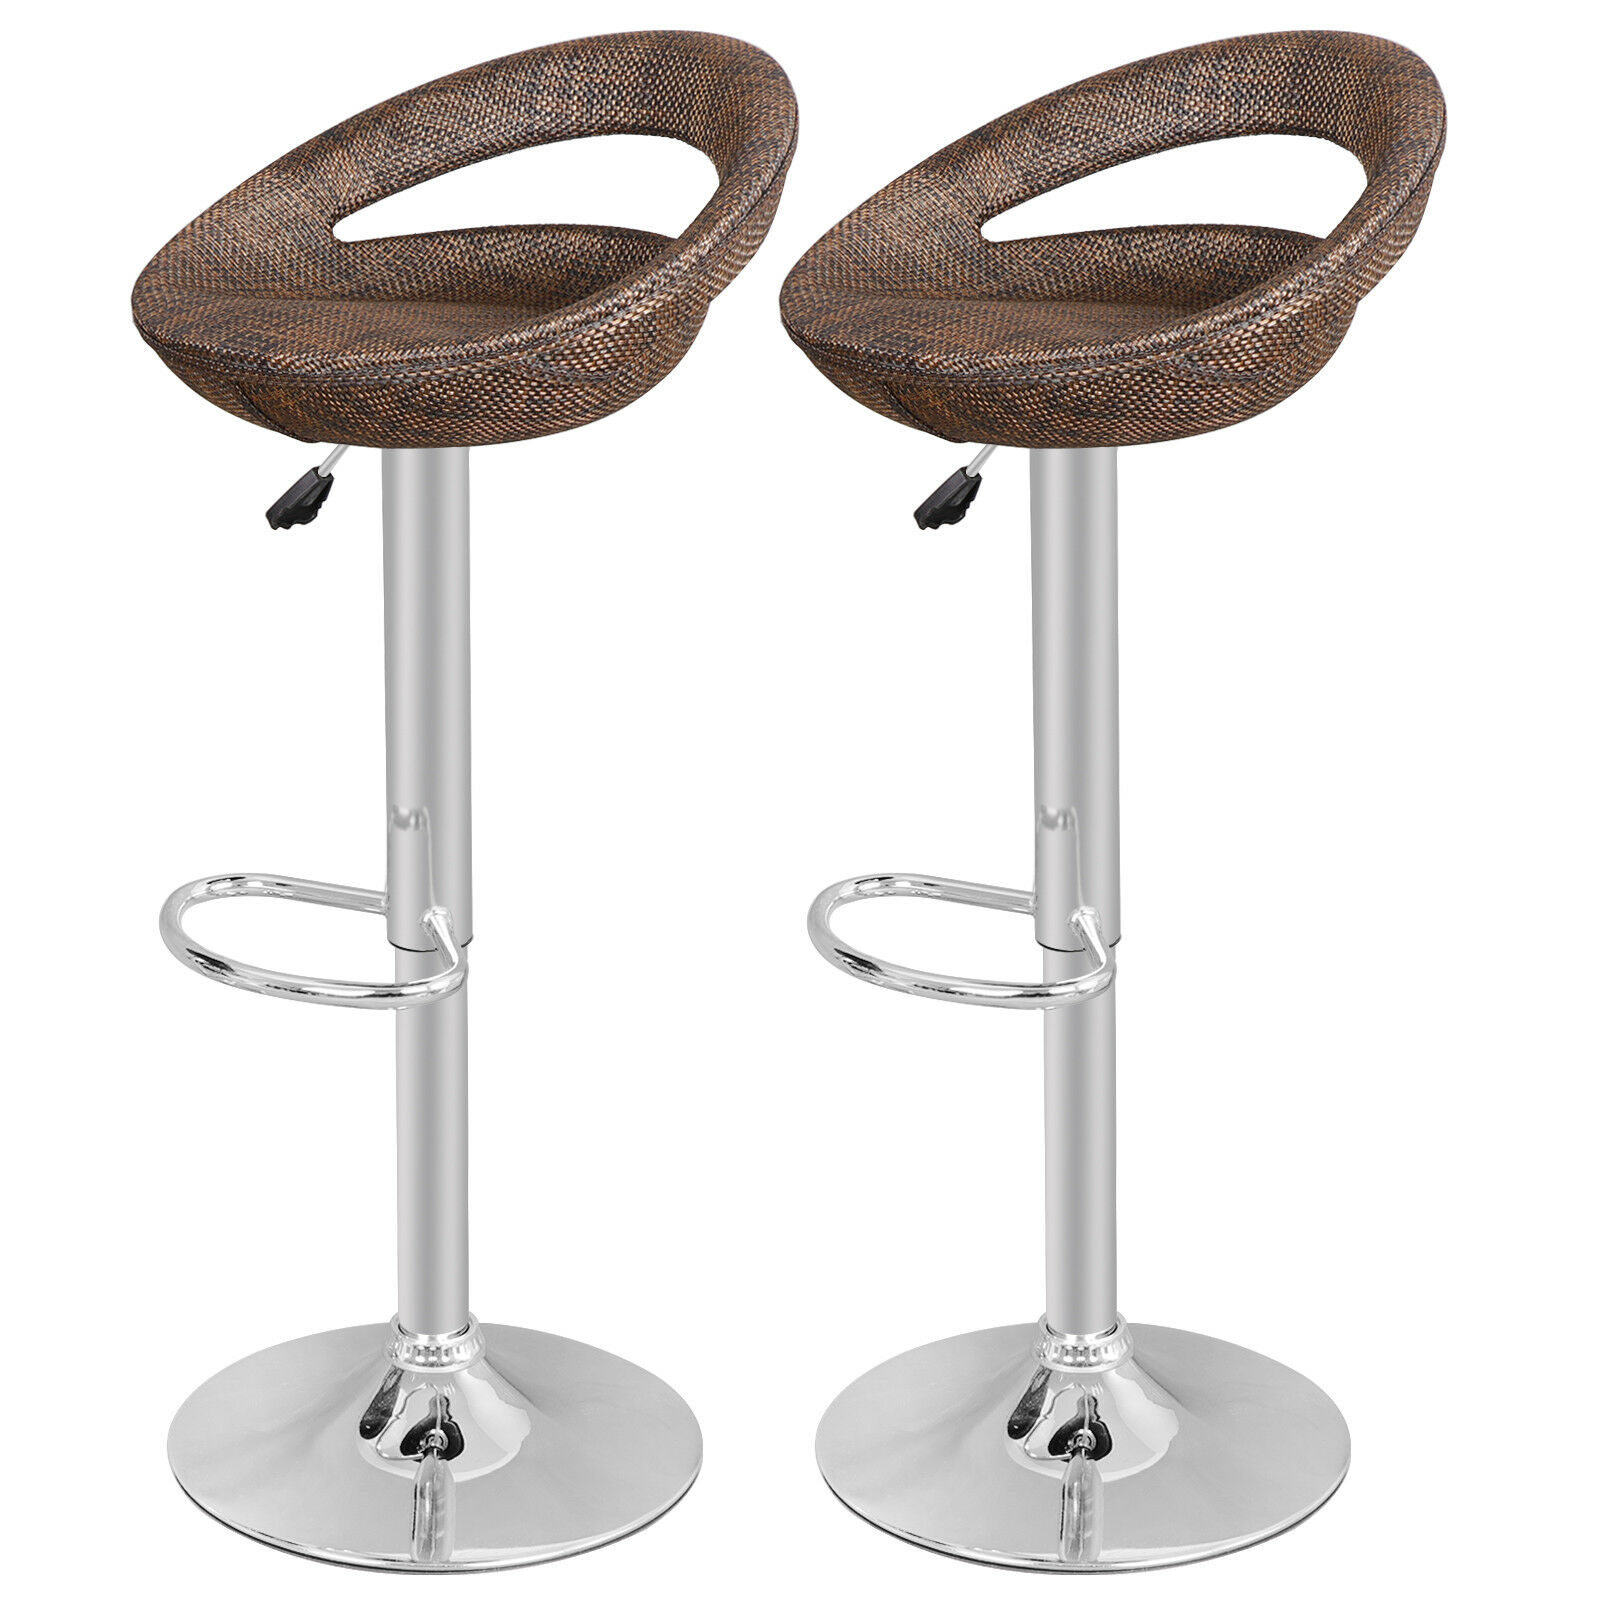 Set of 2 Modern Adjustable Height Home Pub ABS Rattan Swivel  Wicker Bar Stool Benches, Stools & Bar Stools